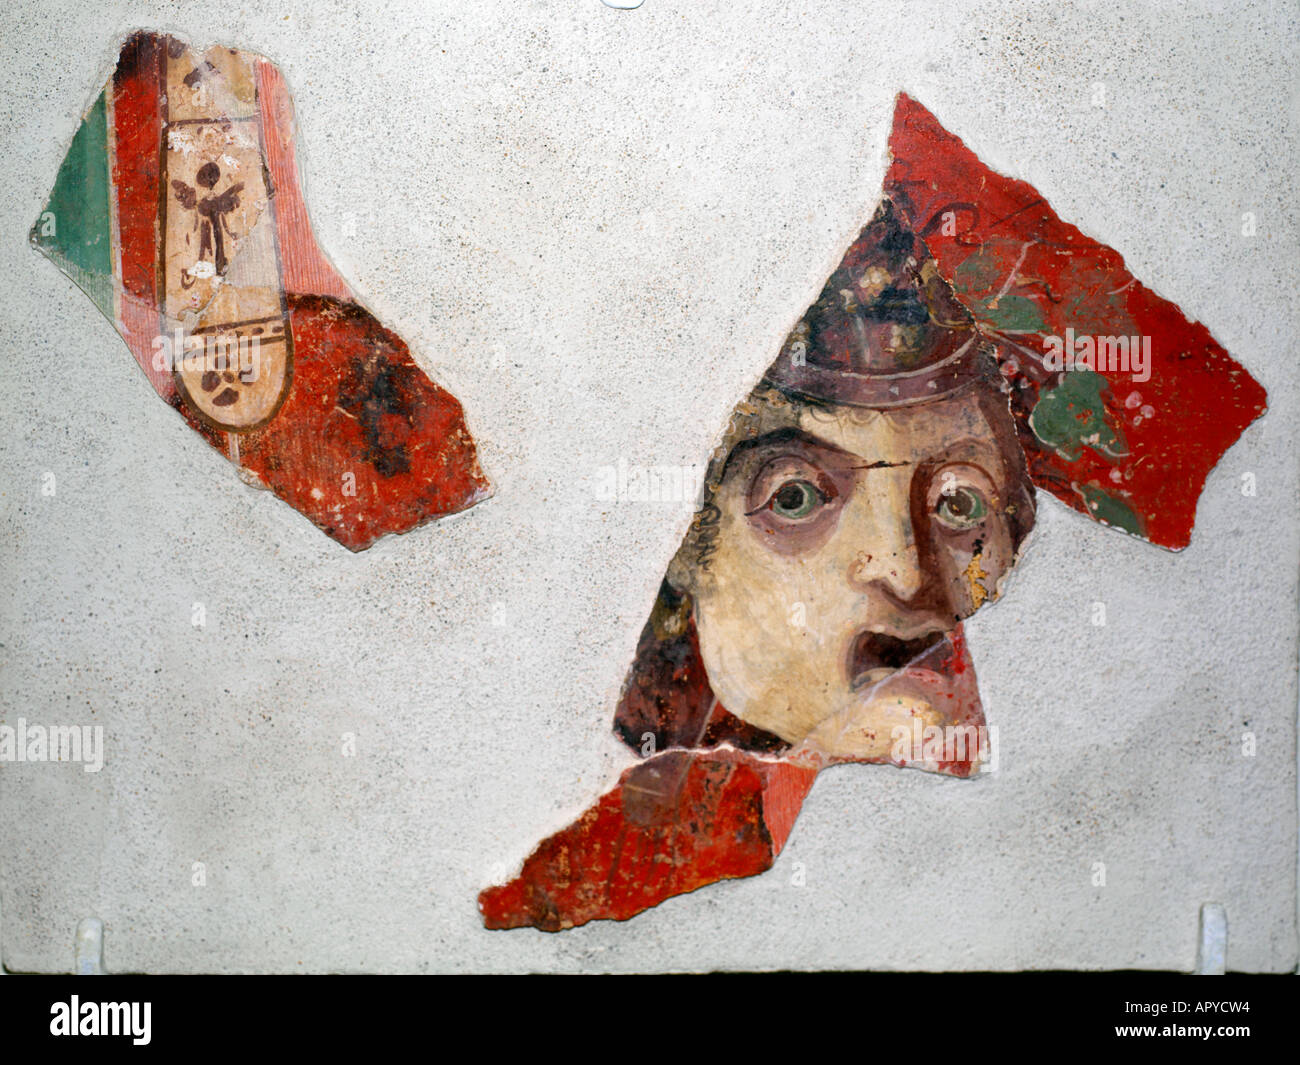 Solunta Sicily Italy Fragments of Painted Face Pitture Parietali Second Century - Stock Image